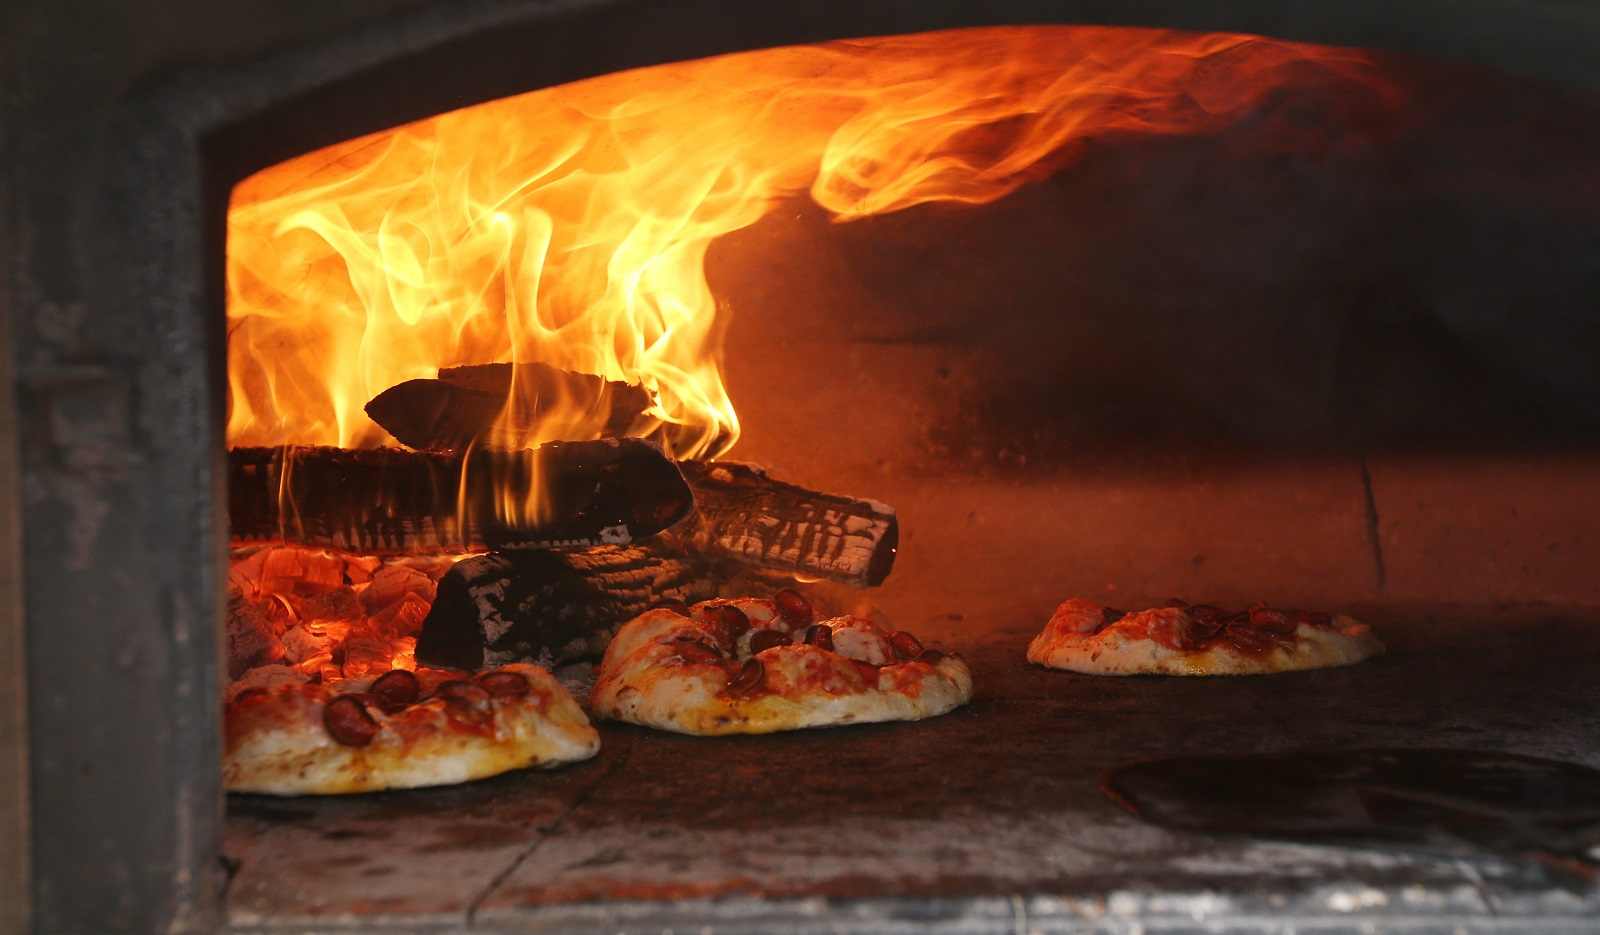 Pizza cooks remarkably fast in Pizza Amore's wood-fired oven. (Sharon Cantillon/Buffalo News)